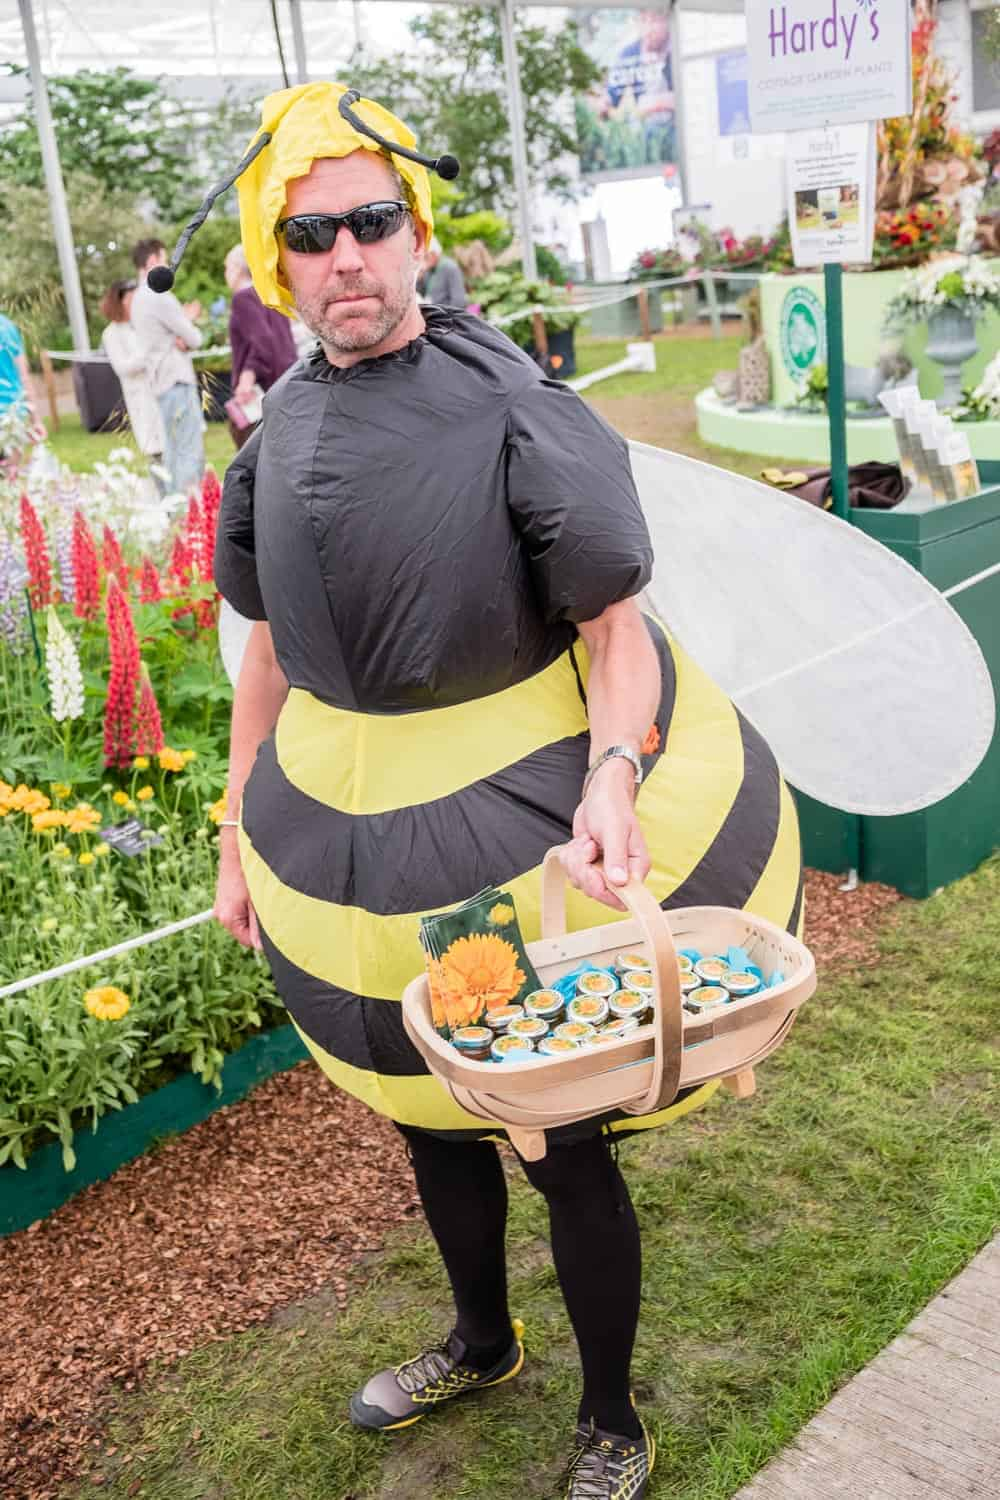 Chelsea Flower Show 2018 Save the bees